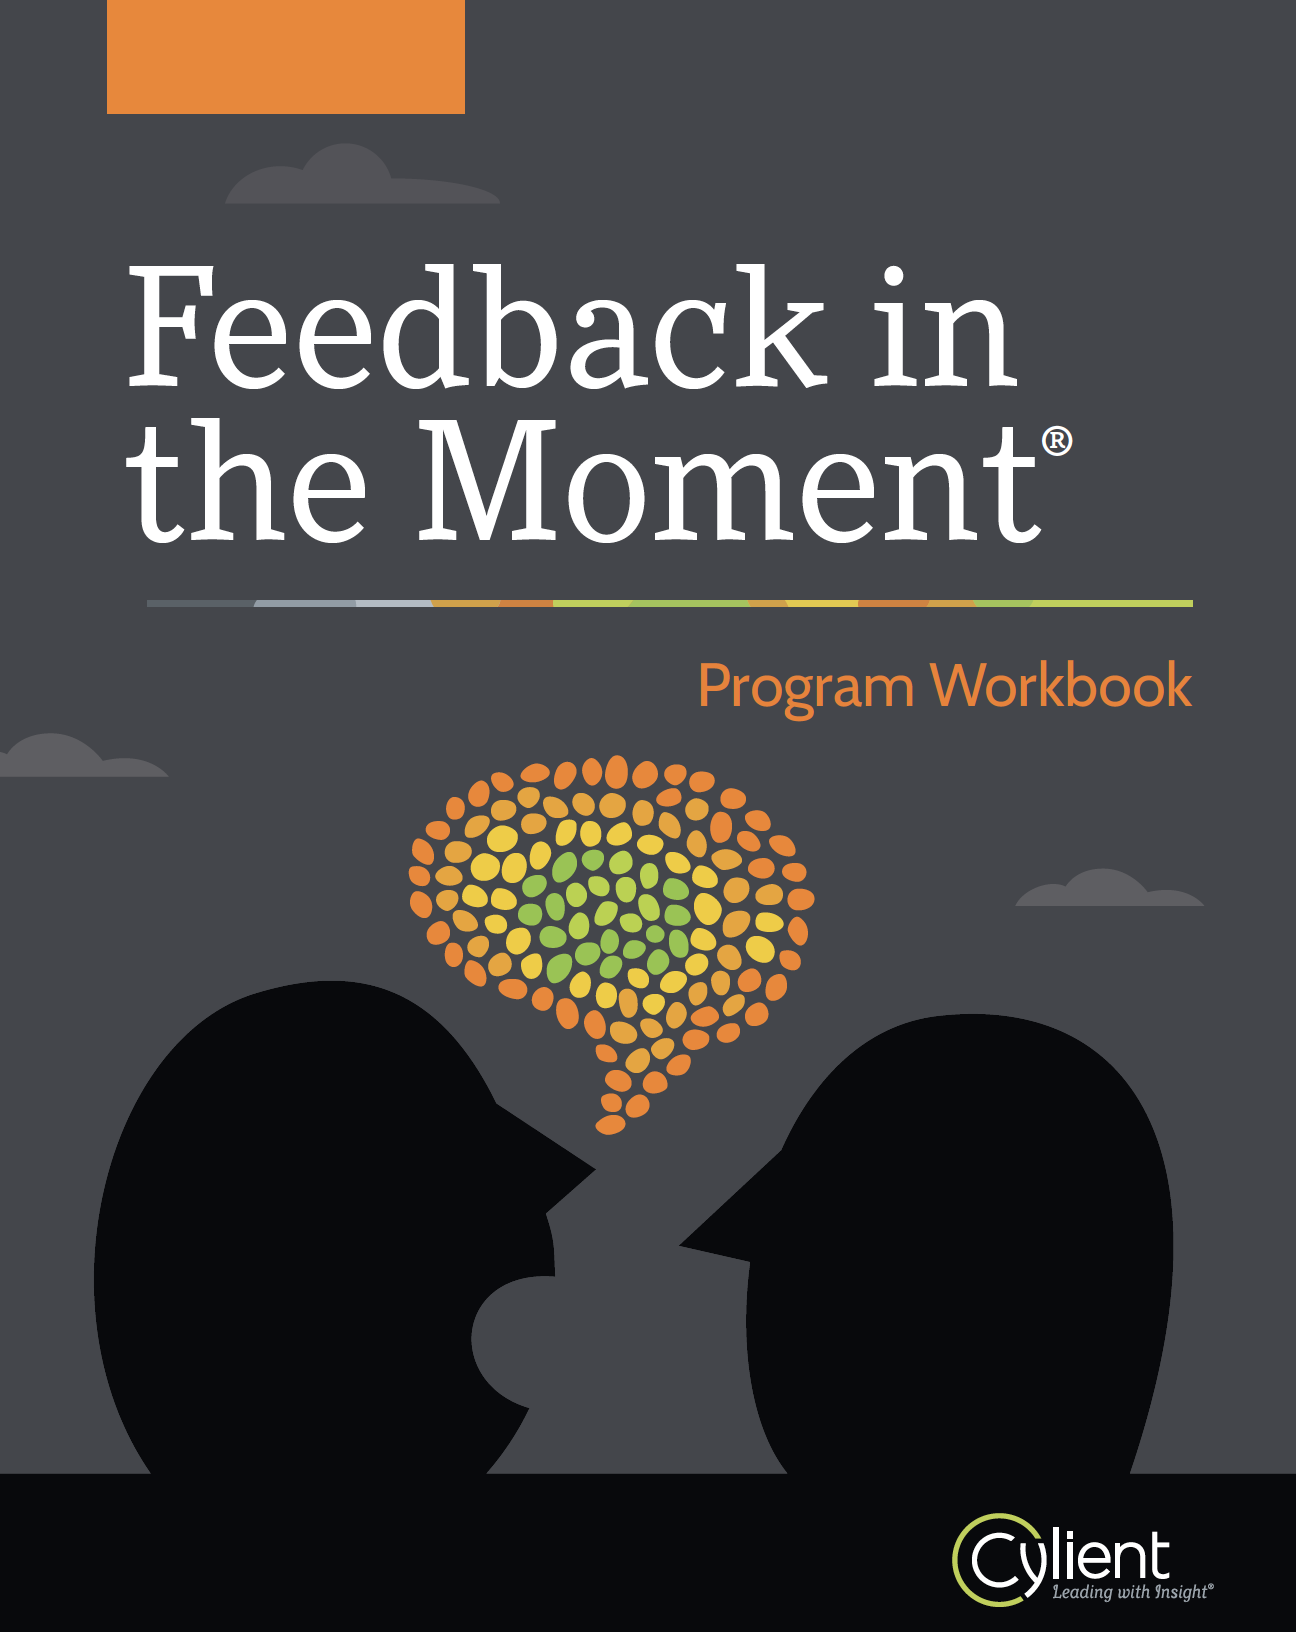 Feedback in the Moment® Workshop